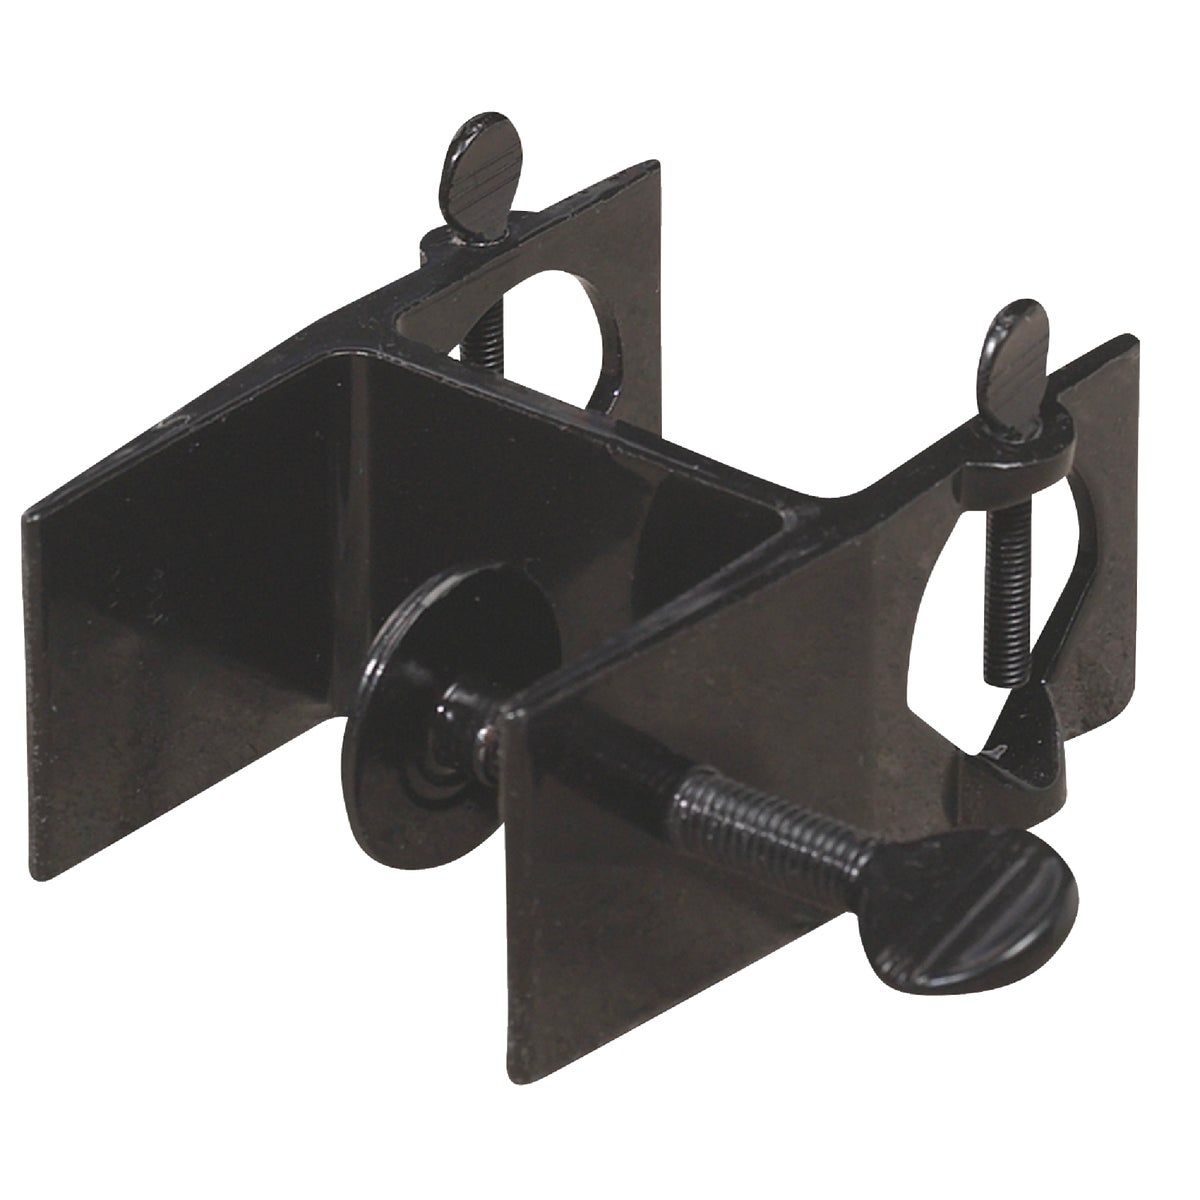 DECK MOUNT CLAMP - 1312130 by Lamplight Farms